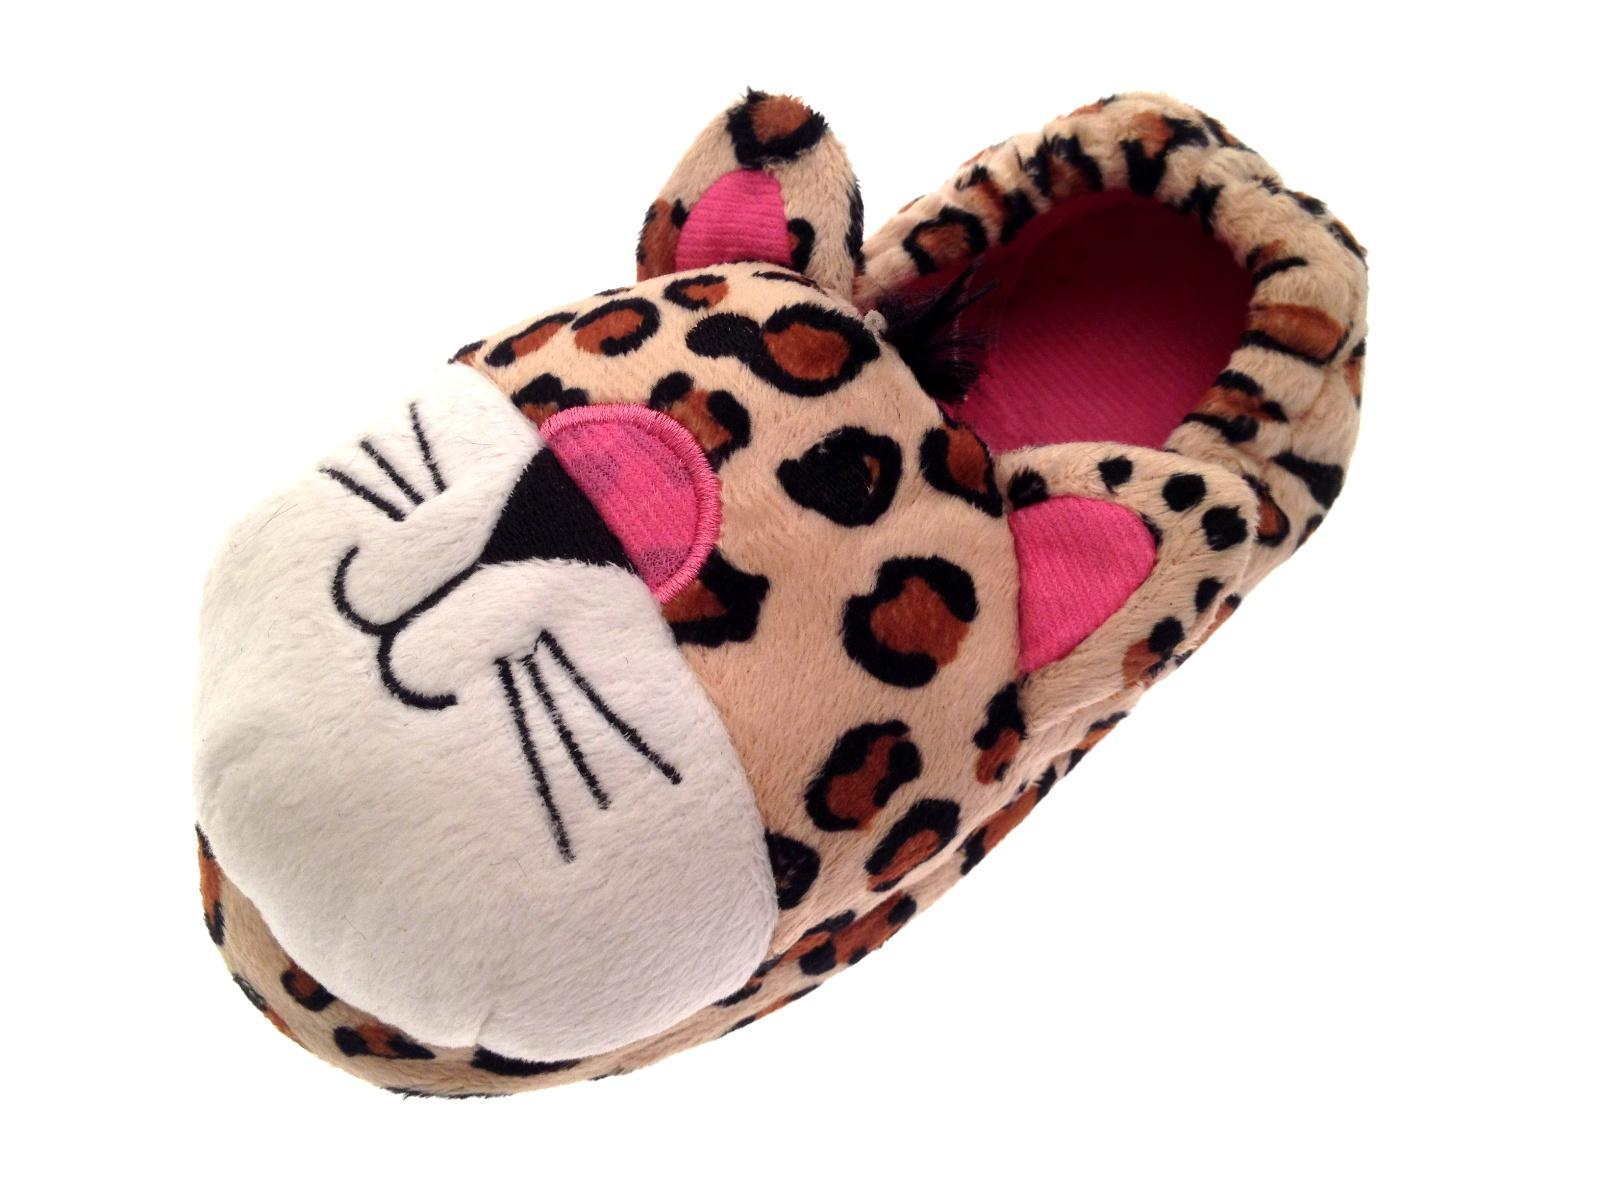 439a6d74c00 Girls Plush 3D Animal Slippers Boots Character Winter Booties Xmas ...